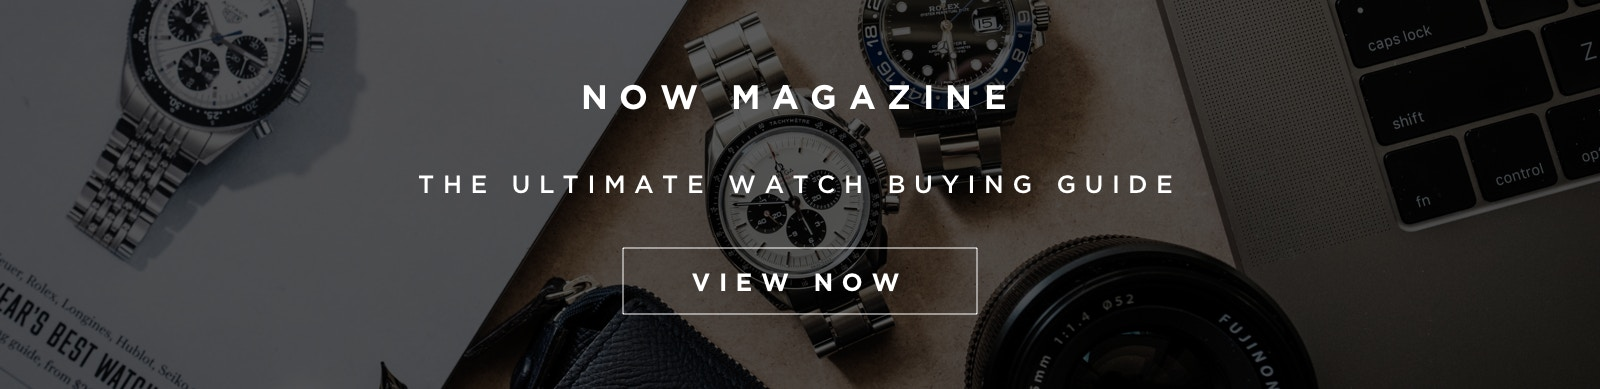 The ultimate watch buying guide